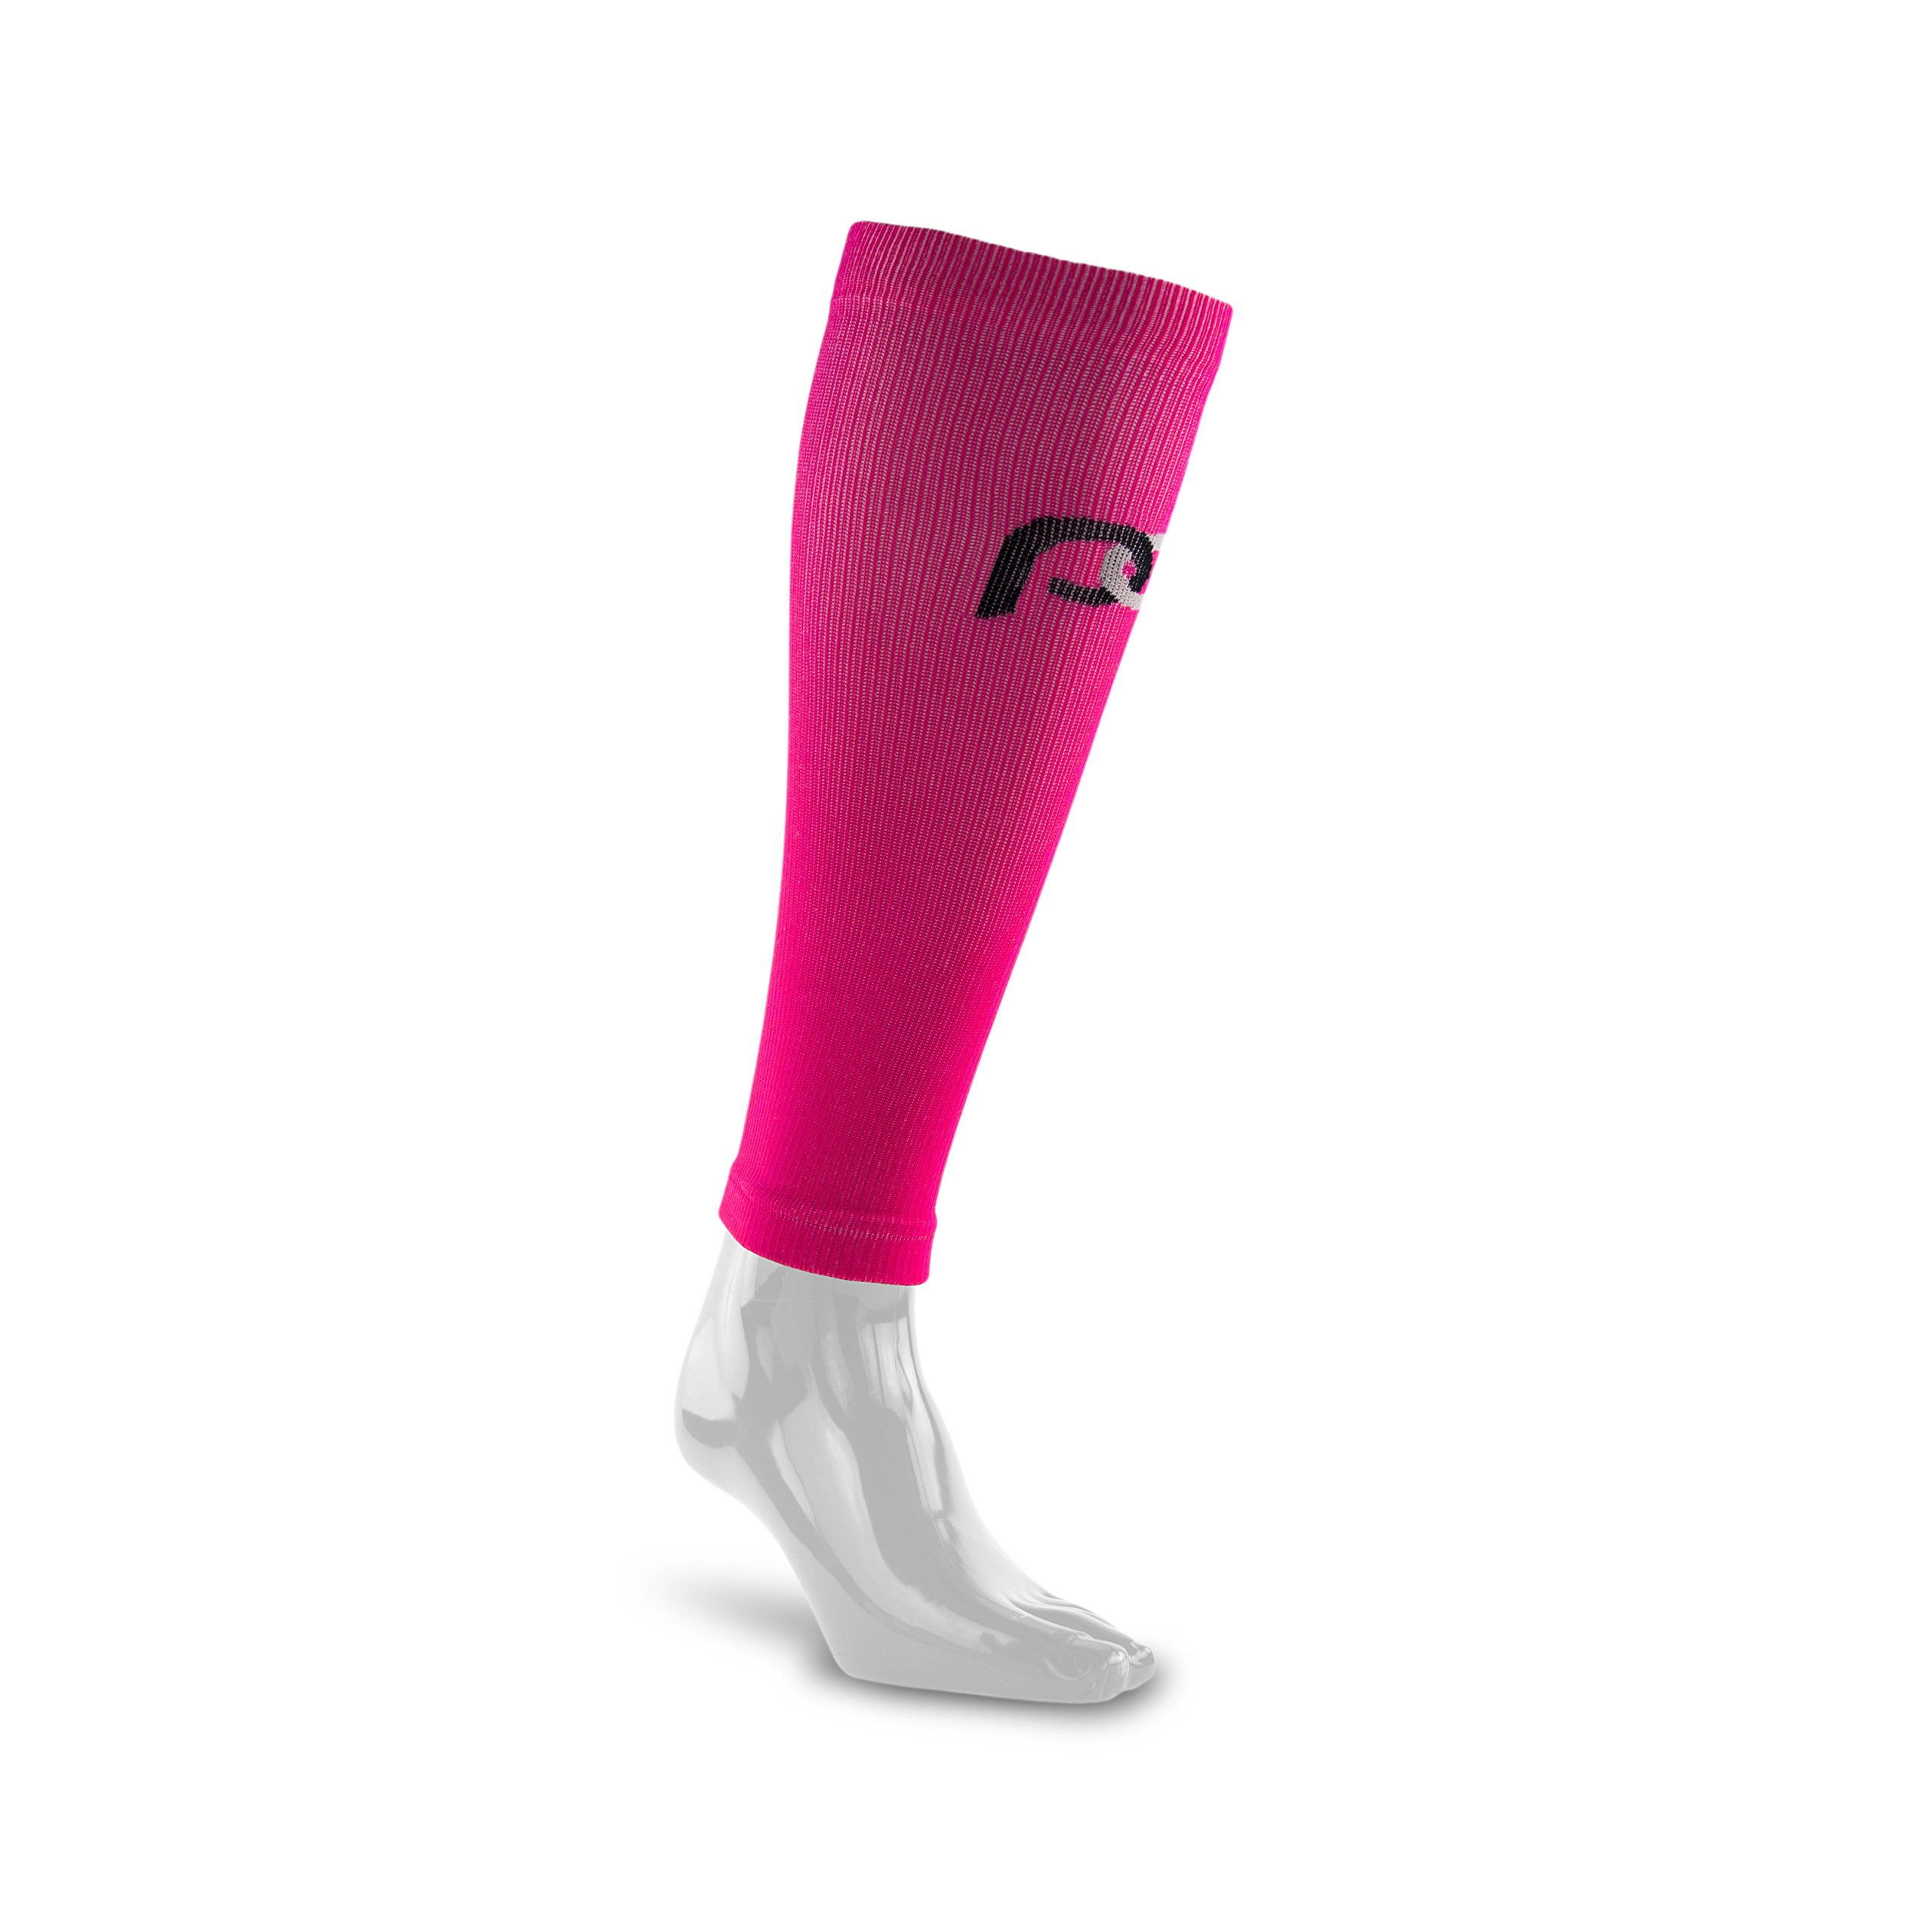 PRO Compression: Calf (Full-Length) Compression Sleeves, Pink, Small/Medium